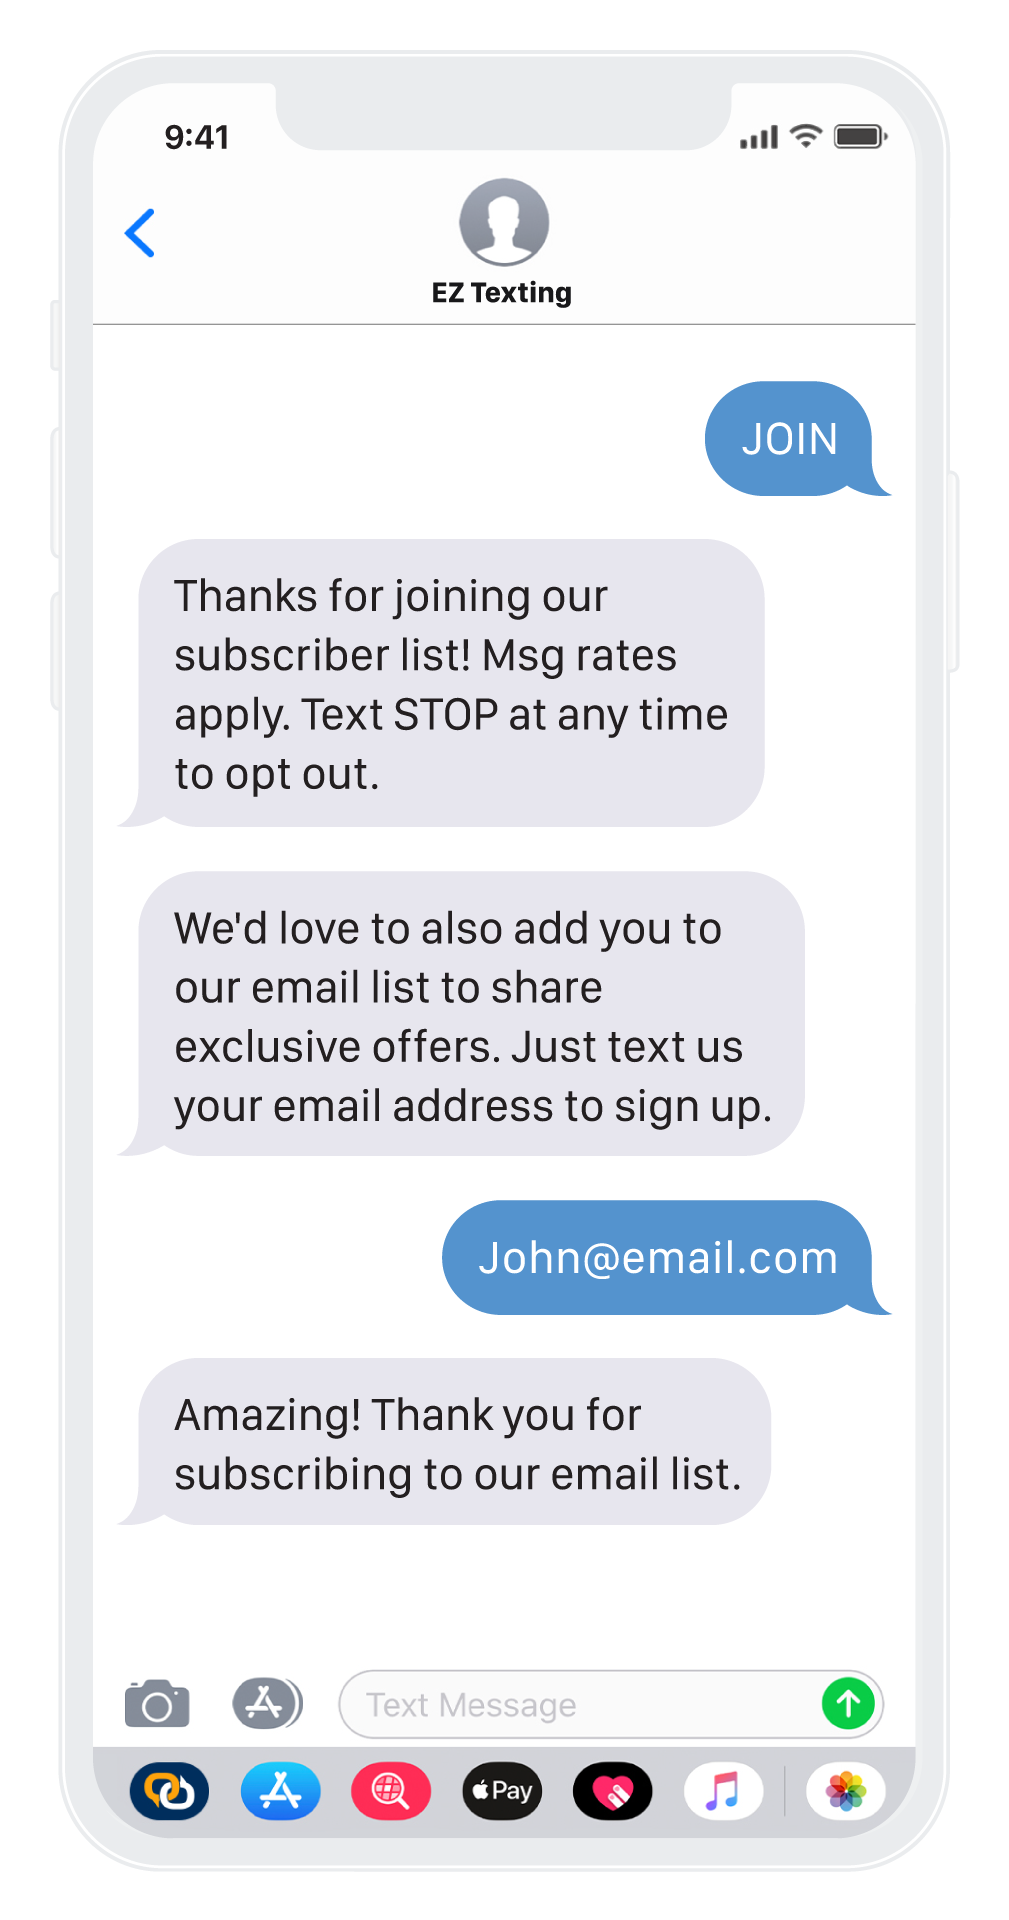 Image3 (Mailchimp-message) - EZ Texting Integration